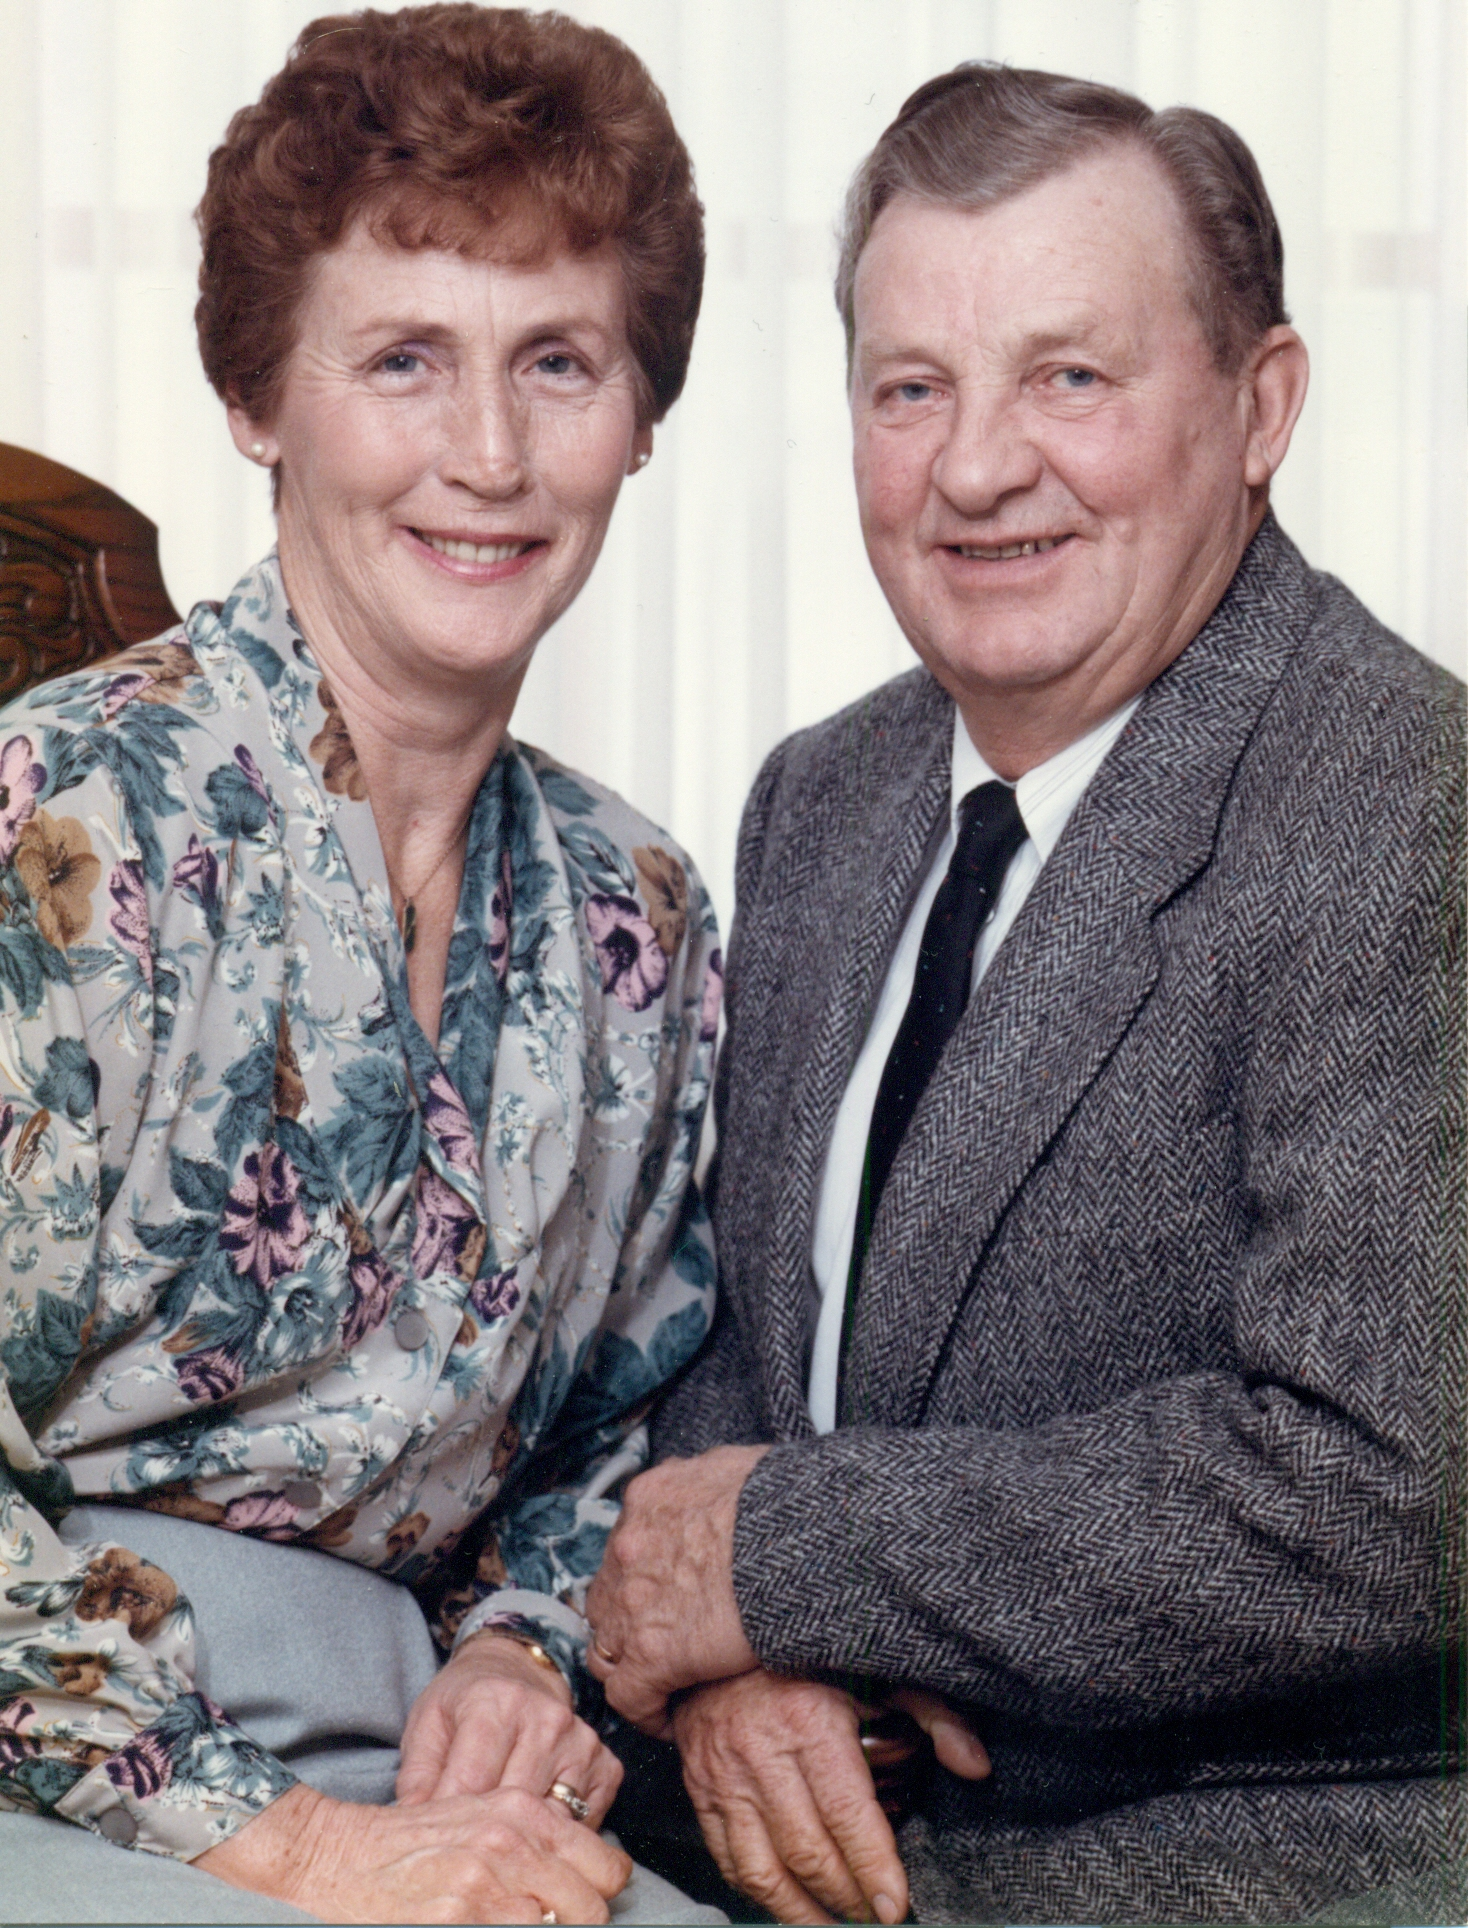 Jack and Bea Phillips